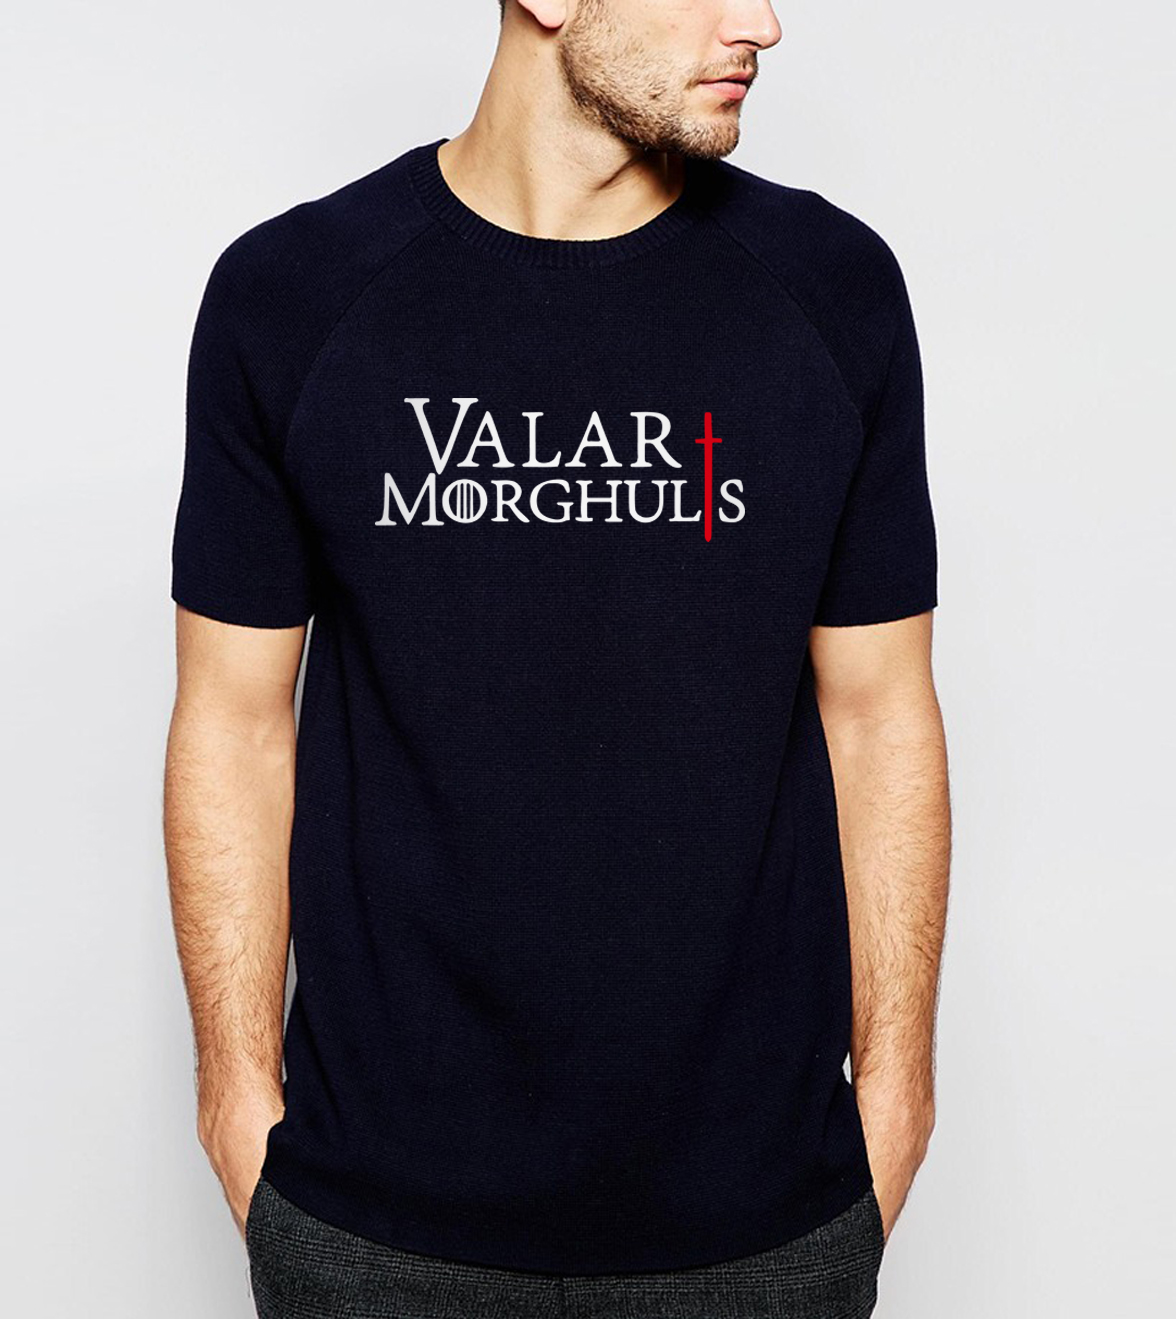 hot sale Game of Thrones Valar Morghulis Printes   T  -  shirt   2019 Summer Fashion Casual Short Sleeve O-neck Men   T     shirts   100% Cotton